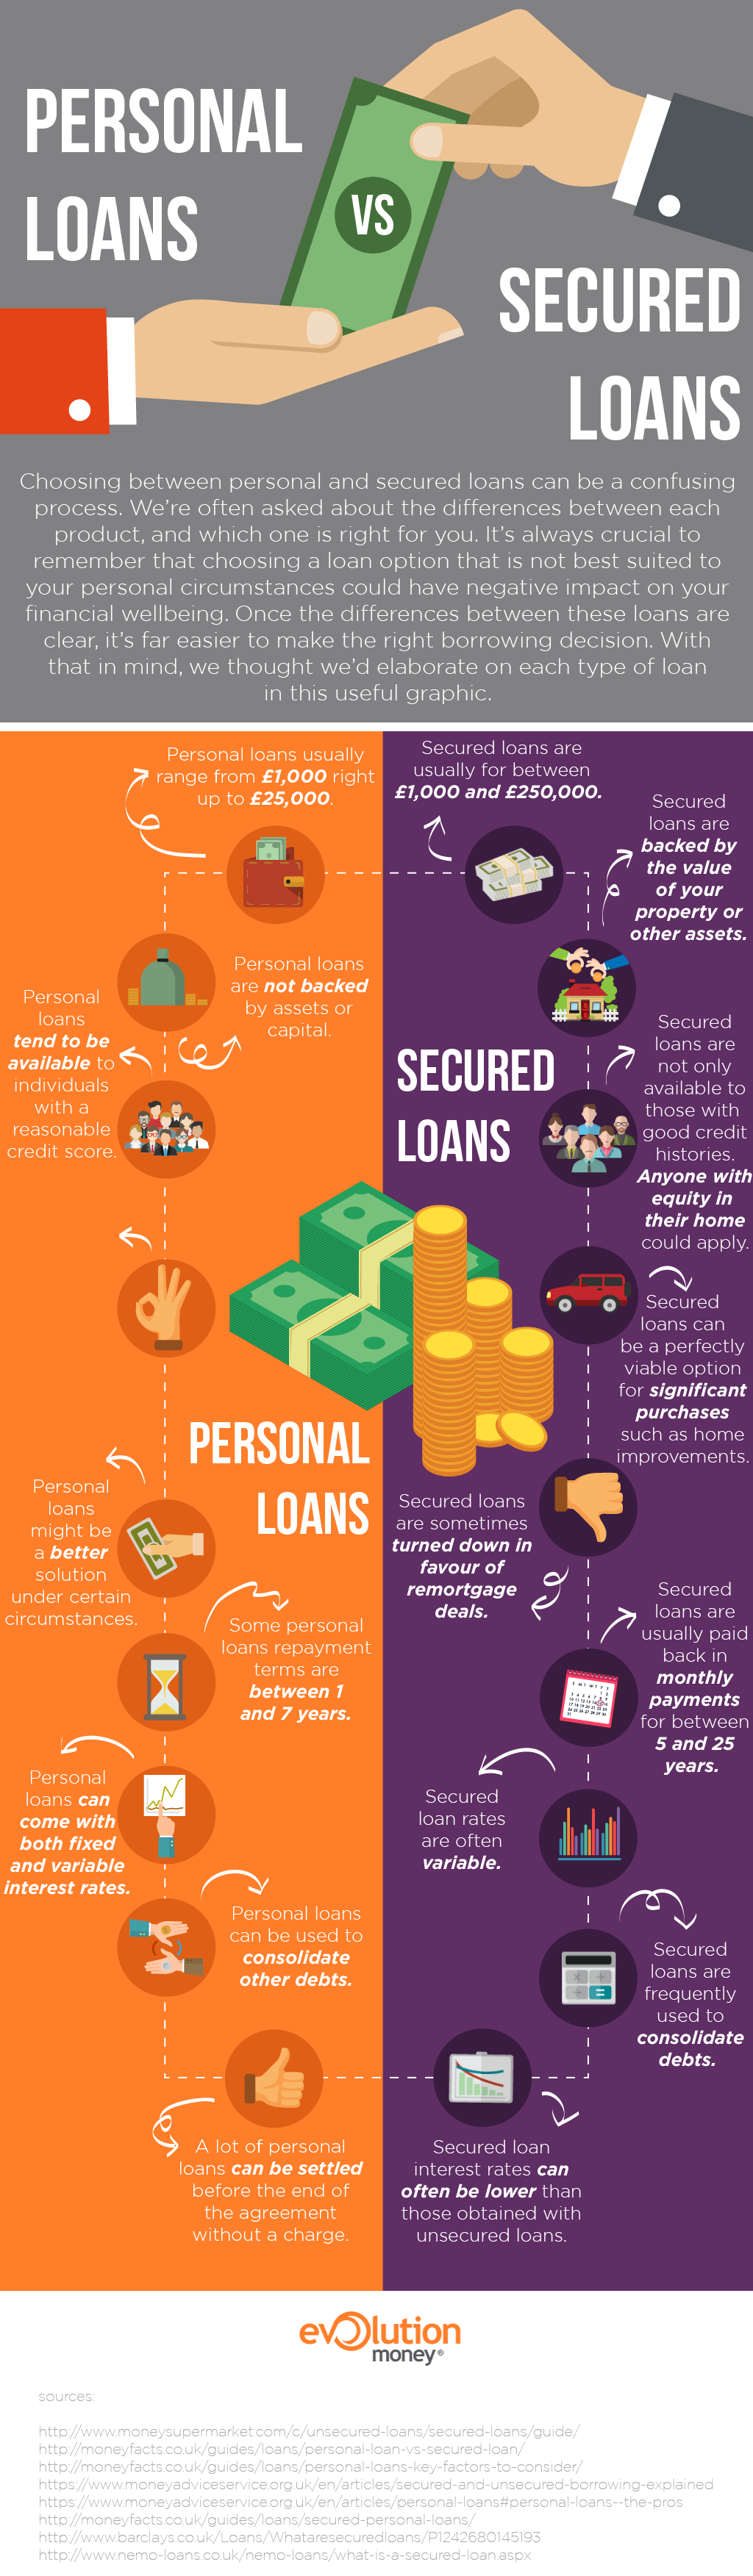 personal versus secured loans